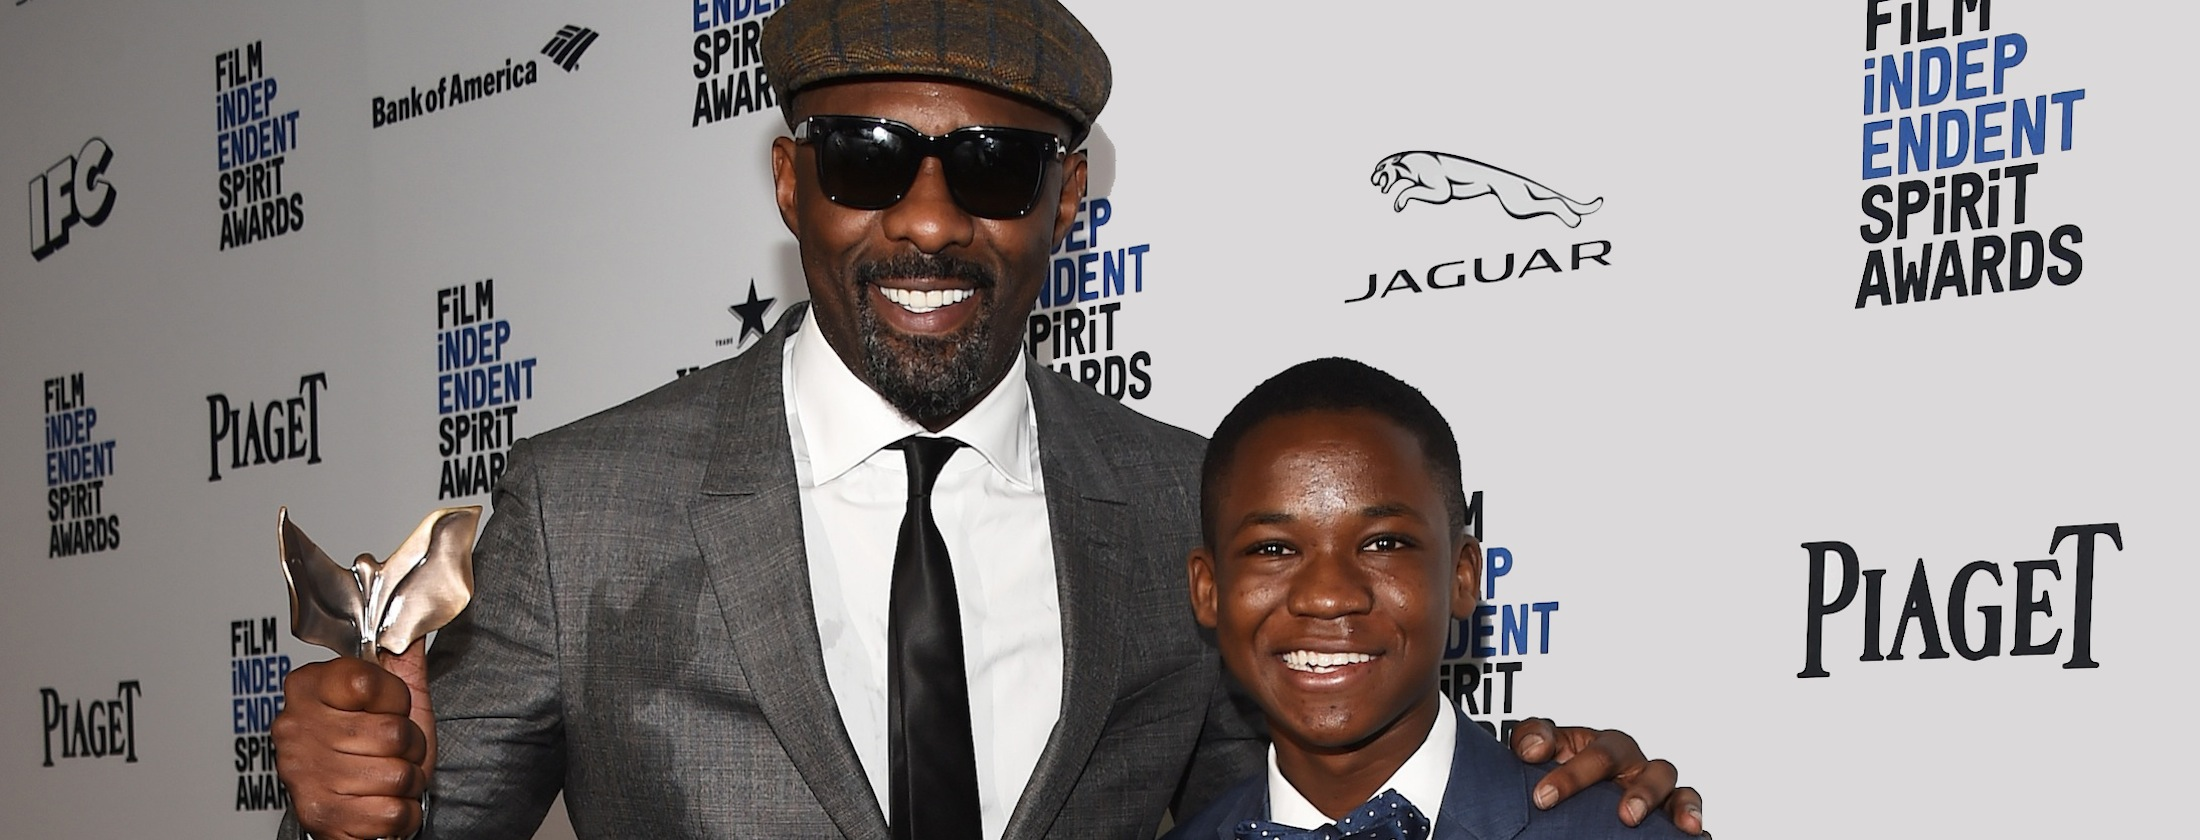 SANTA MONICA, CA - FEBRUARY 27:  Actors Idris Elba (L) and Abraham Attah attend the 2016 Film Independent Spirit Awards on February 27, 2016 in Santa Monica, California.  (Photo by Amanda Edwards/WireImage)